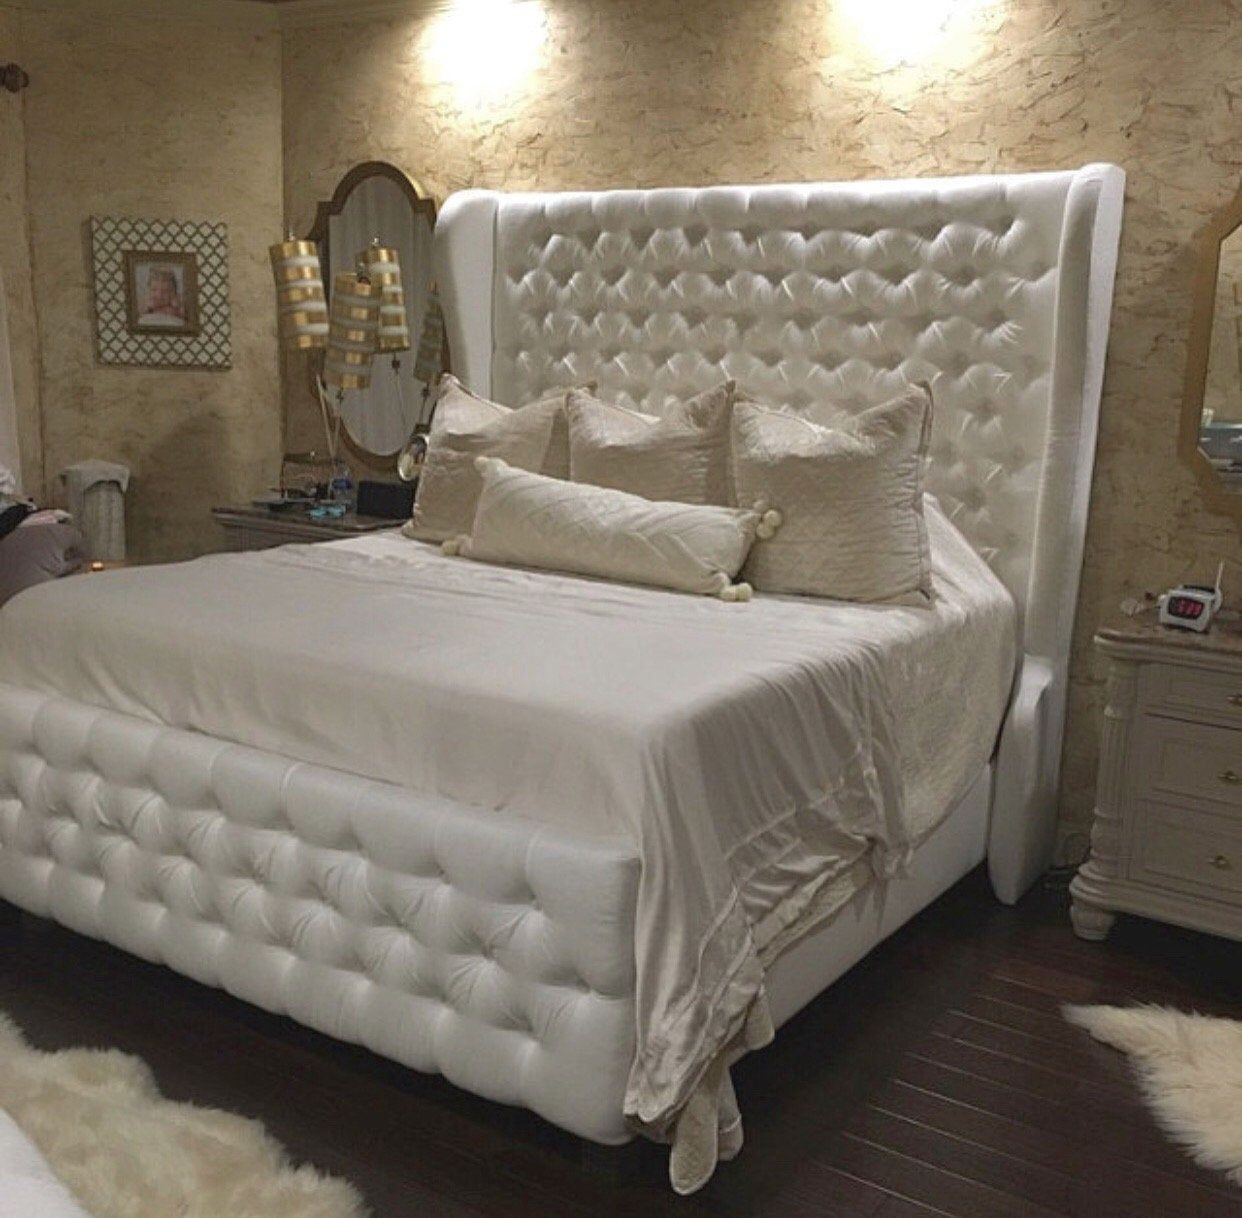 Diamond Tufted Wingback Headboard and Bed Frame with